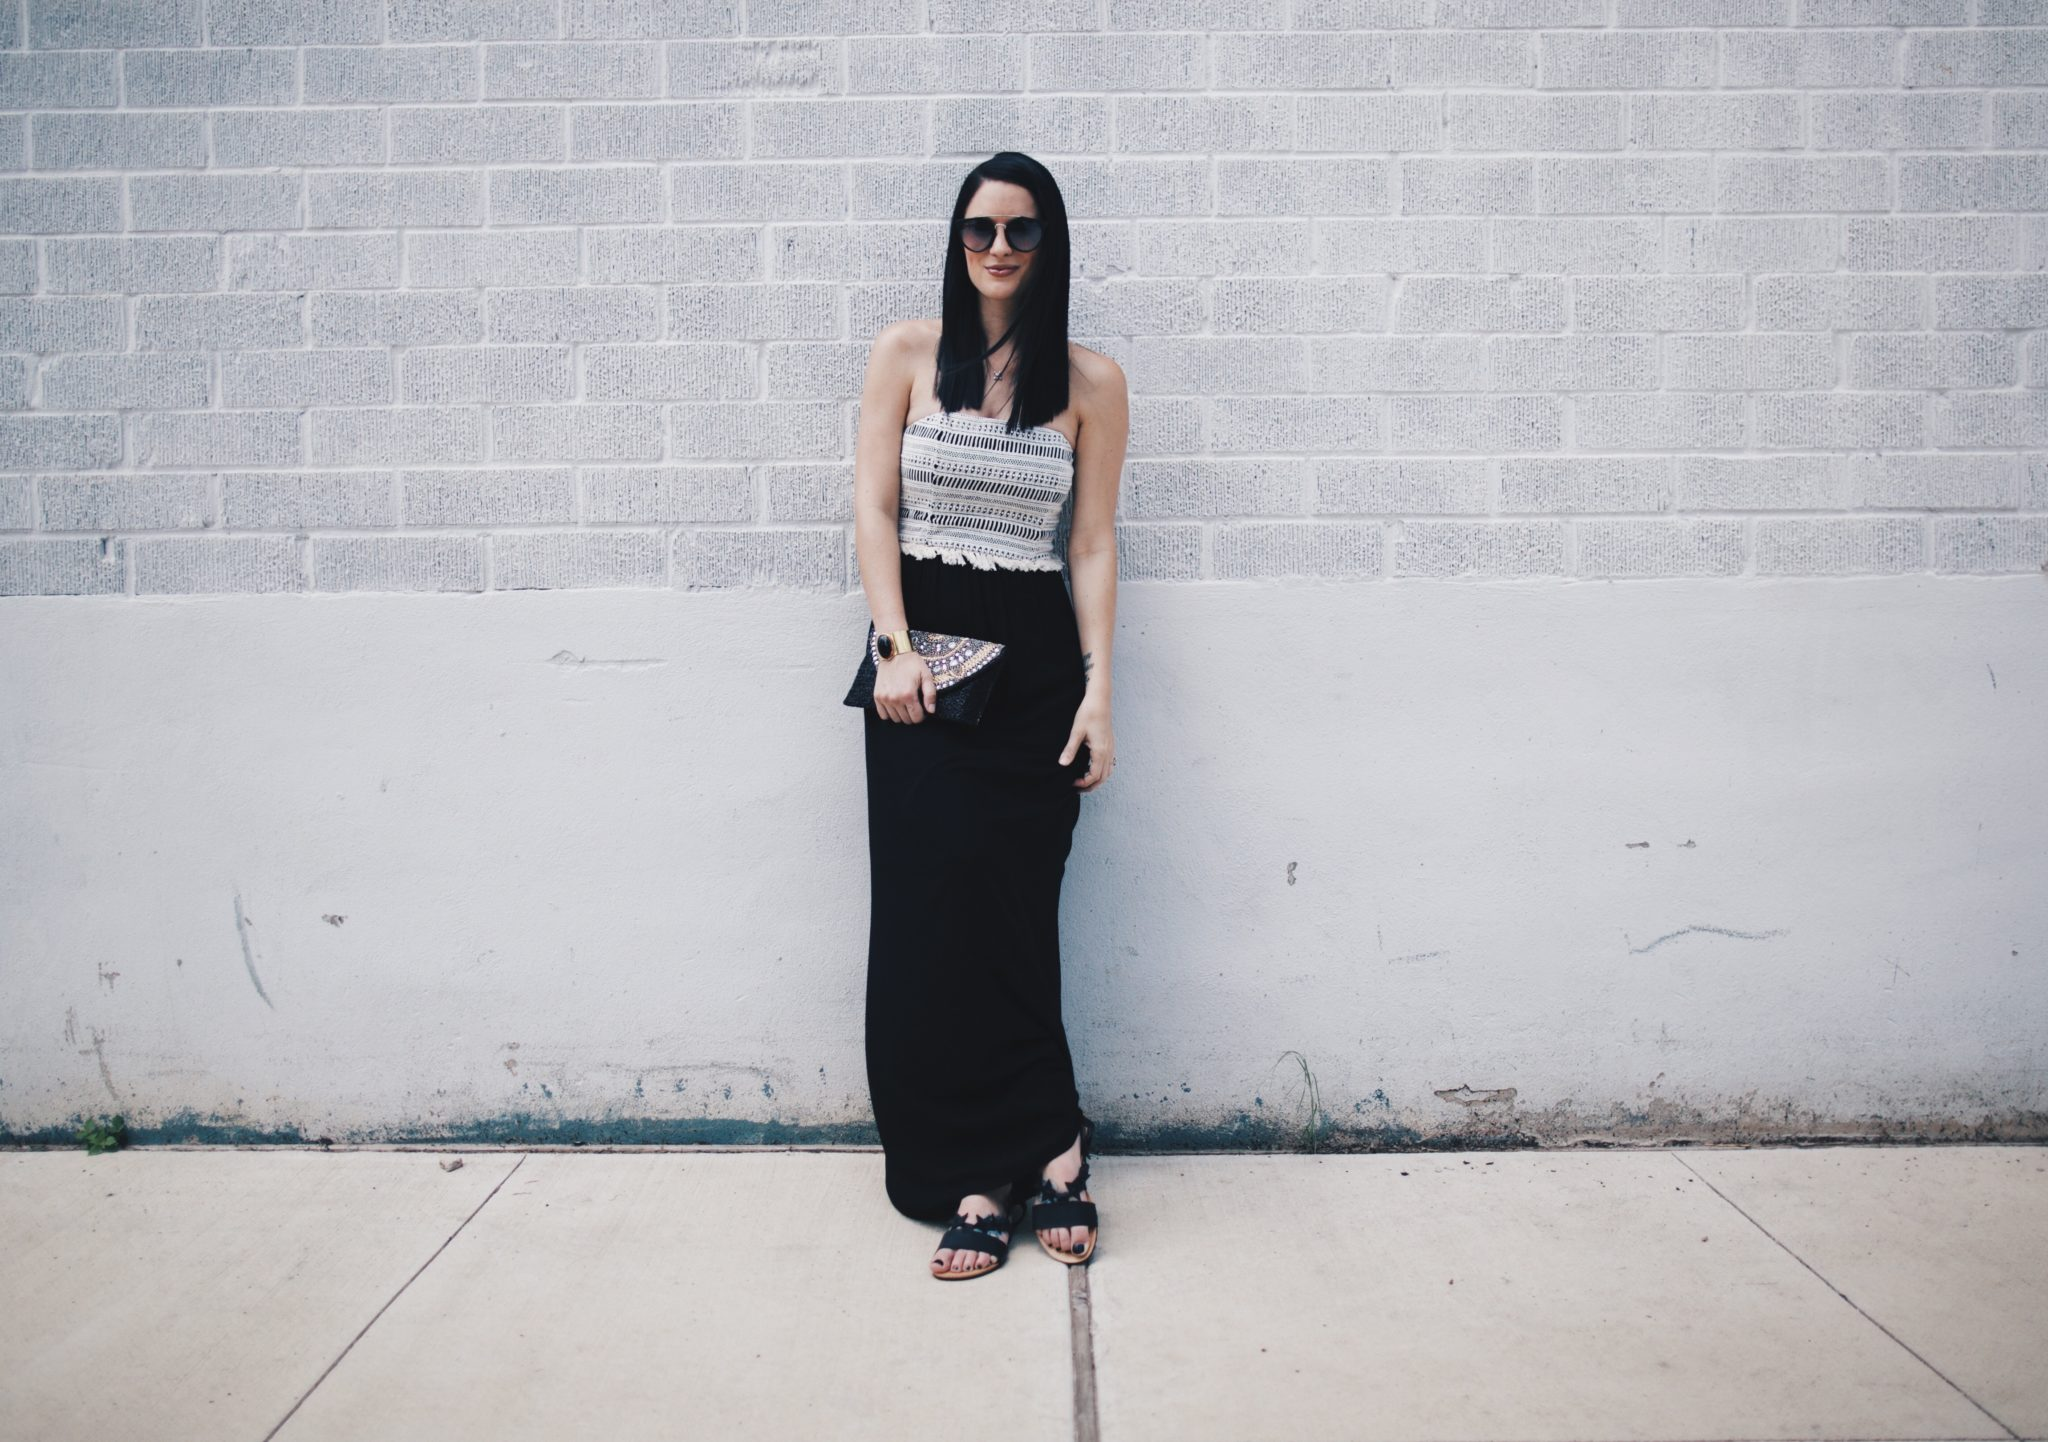 Strapless Dress | how to style a strapless dress | how to wear a strapless dress | summer fashion tips | summer outfit ideas | summer style tips | what to wear for summer | warm weather fashion | fashion for summer | style tips for summer | outfit ideas for summer || Dressed to Kill